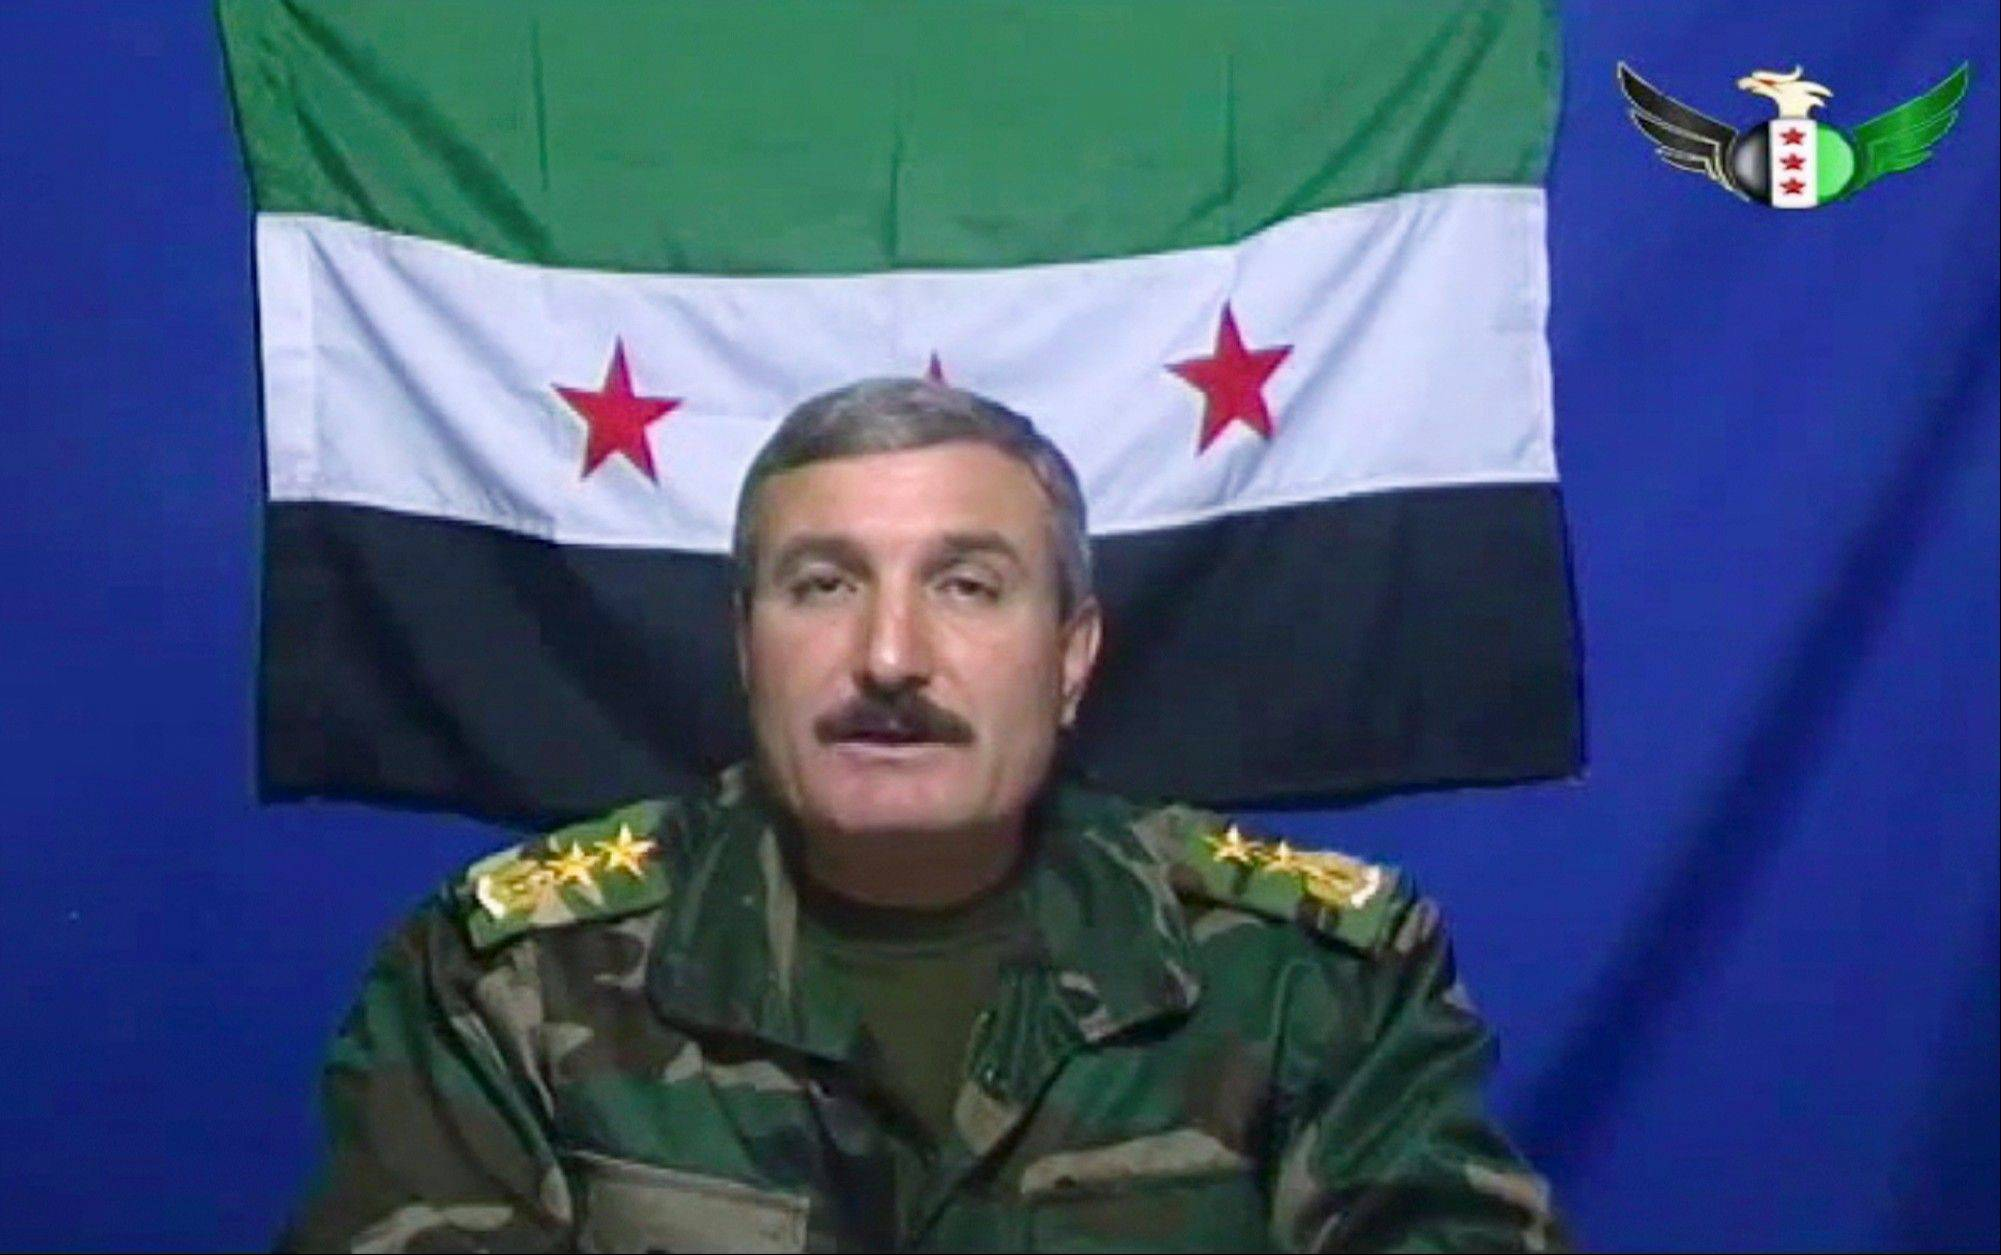 Syrian Commander Riad al-Asaad, a rebel military leader who was among the first to call openly for armed insurrection against President Bashar Assad, was wounded by a bomb planted in his car in eastern Syria, rebels and activists said Monday.